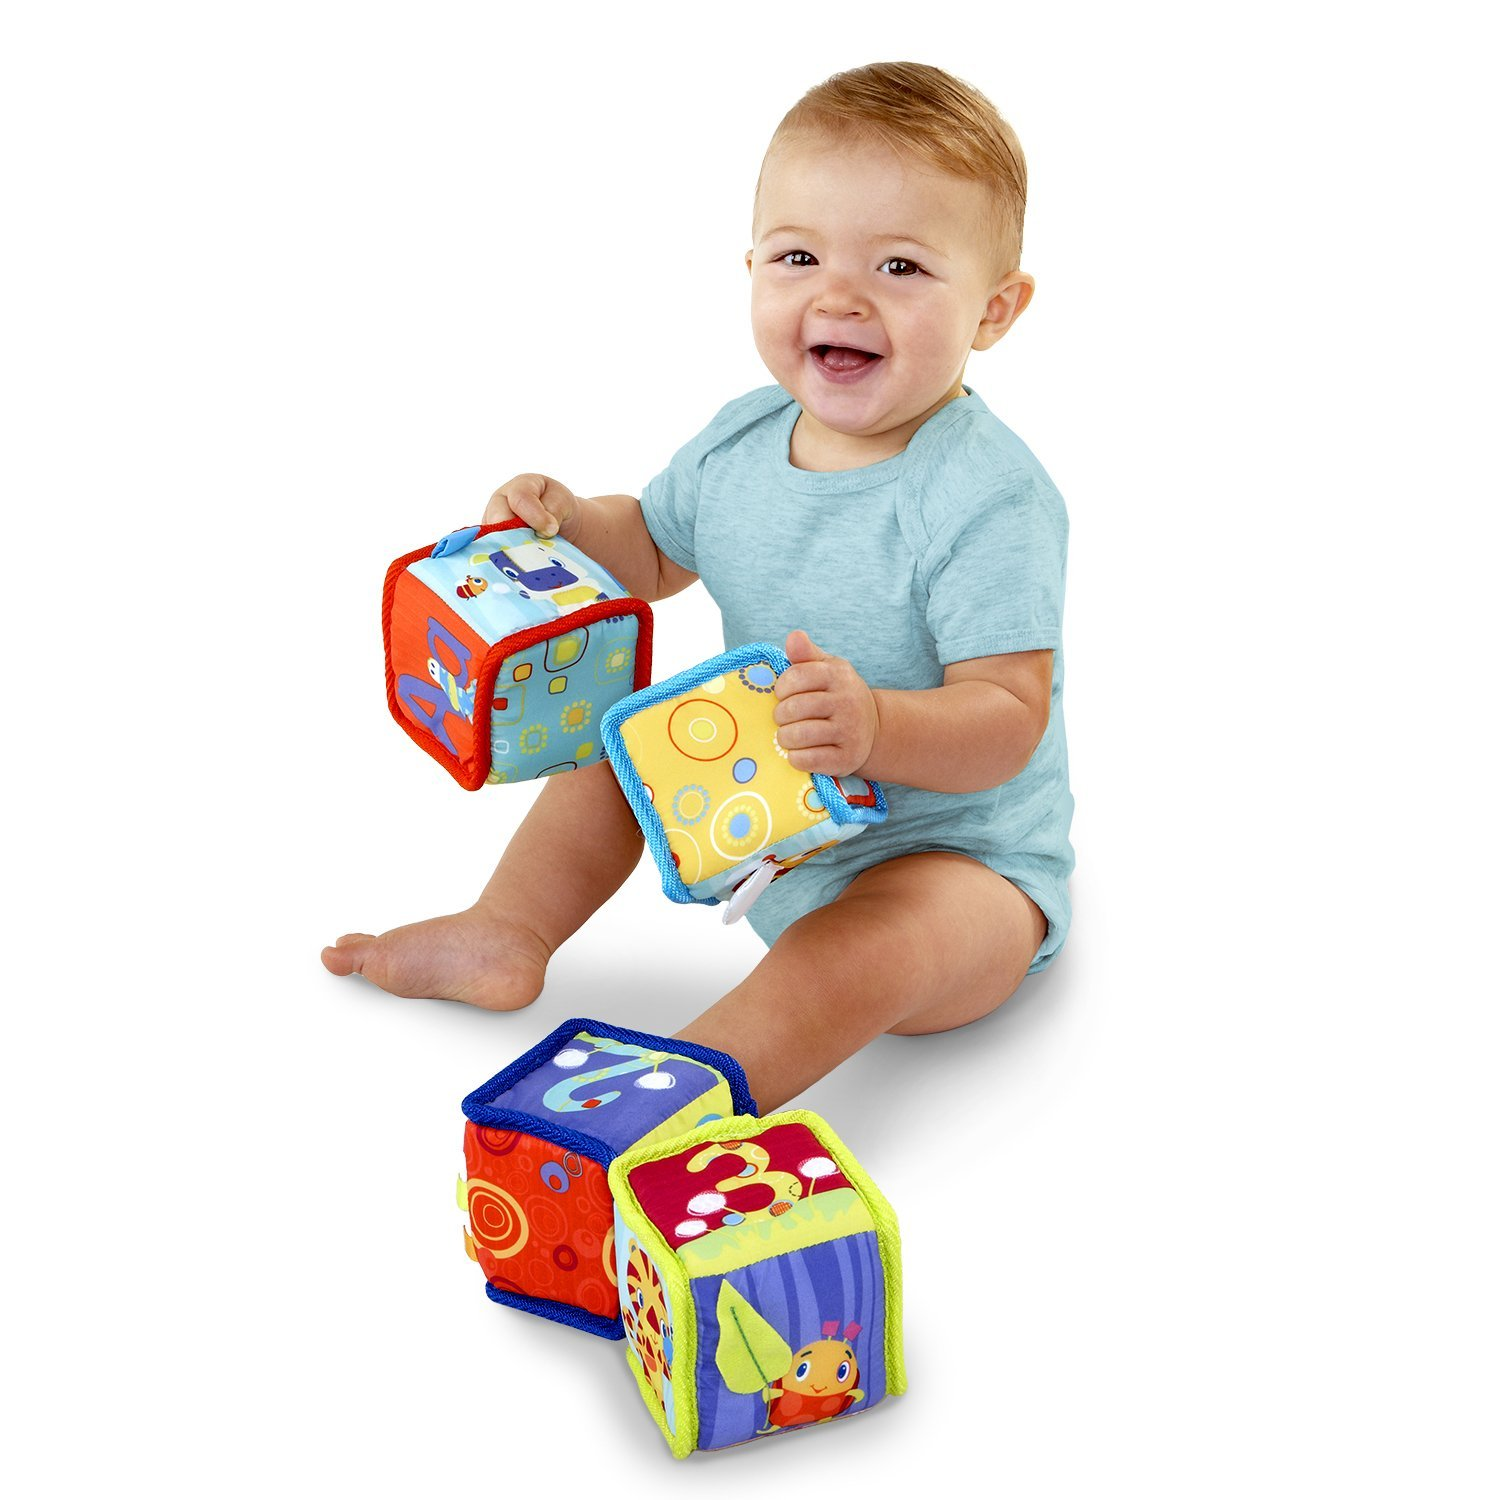 Infant Play Toys Infant Sit And Play Toys Summer Infant